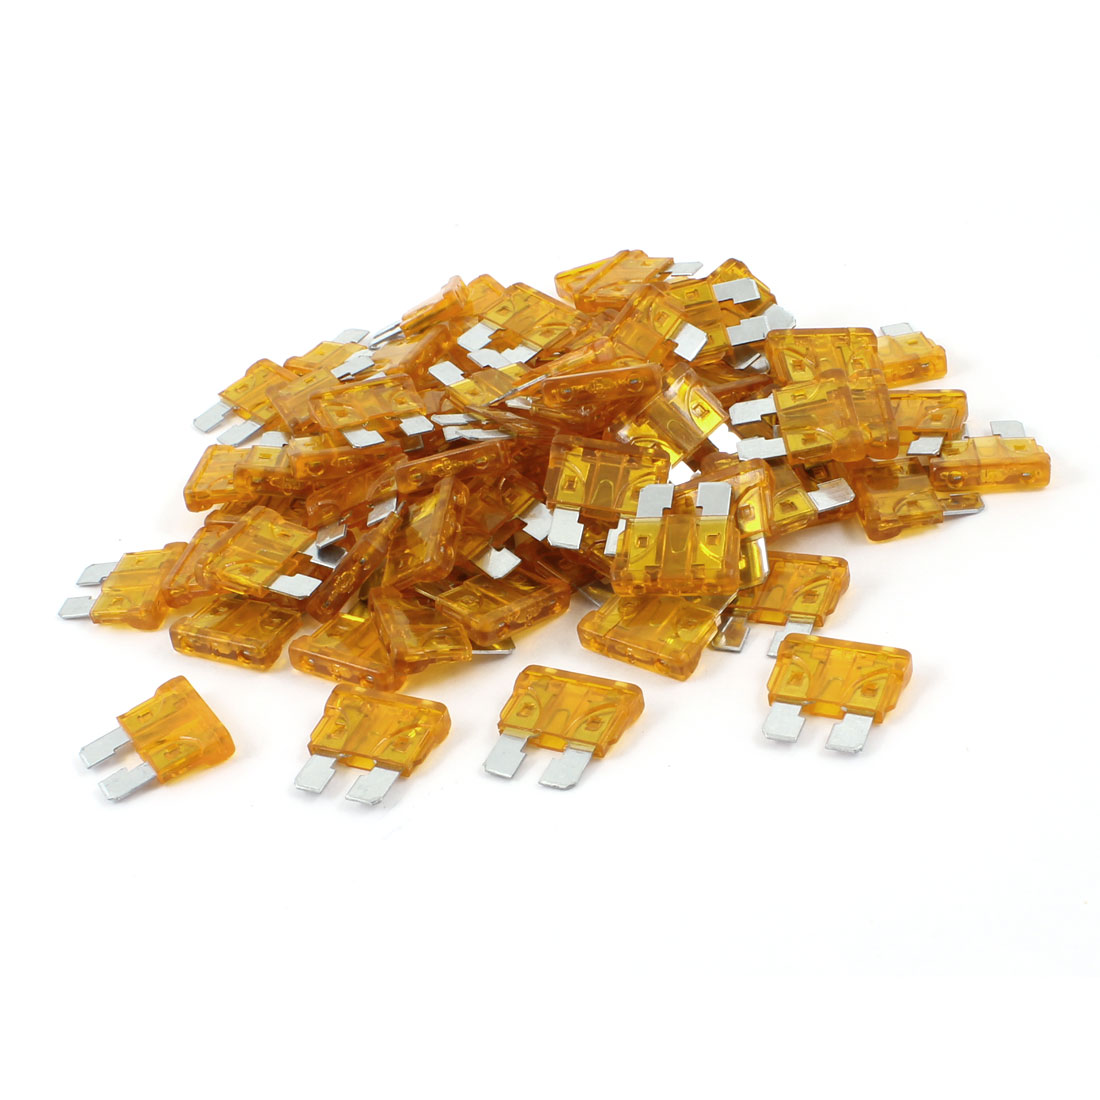 5A Orange Medium Car Blade Fuses Auto Assortment Kit 100pcs